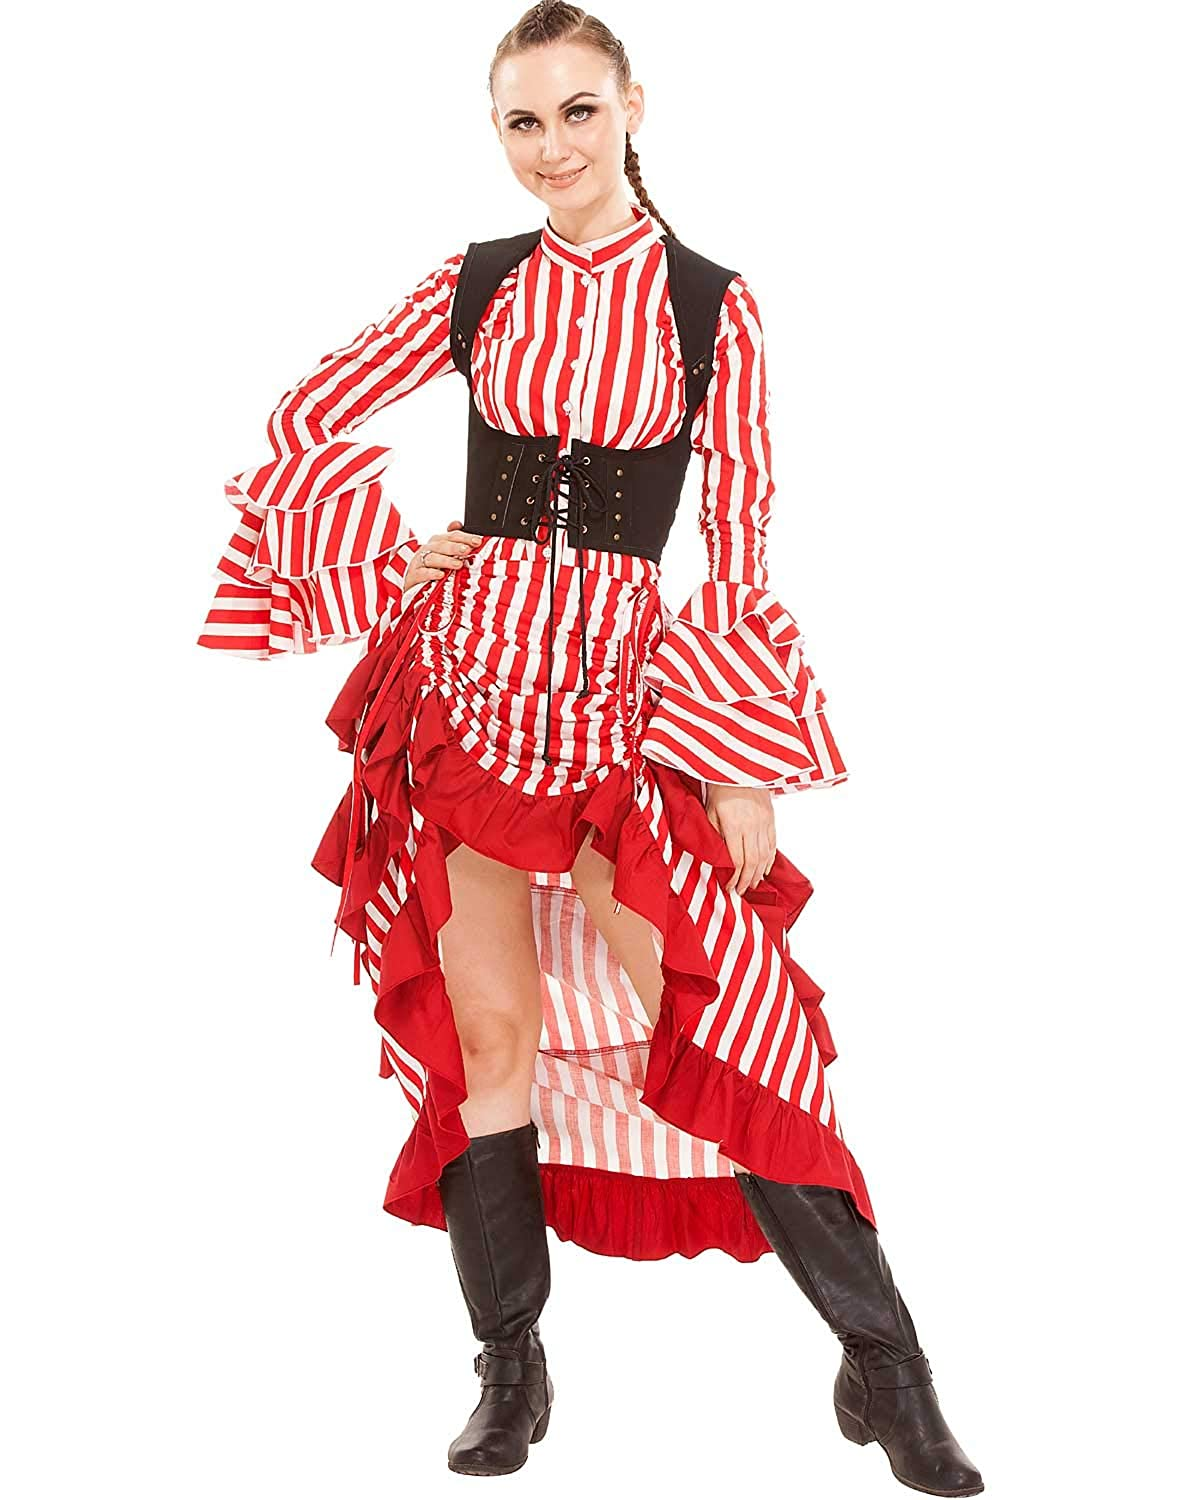 Vintage Burlesque Clothing, Costumes, Outfits ThePirateDressing Steampunk Victorian Cosplay Costume Womens High-Low Show Girl Skirt C1367 $52.95 AT vintagedancer.com